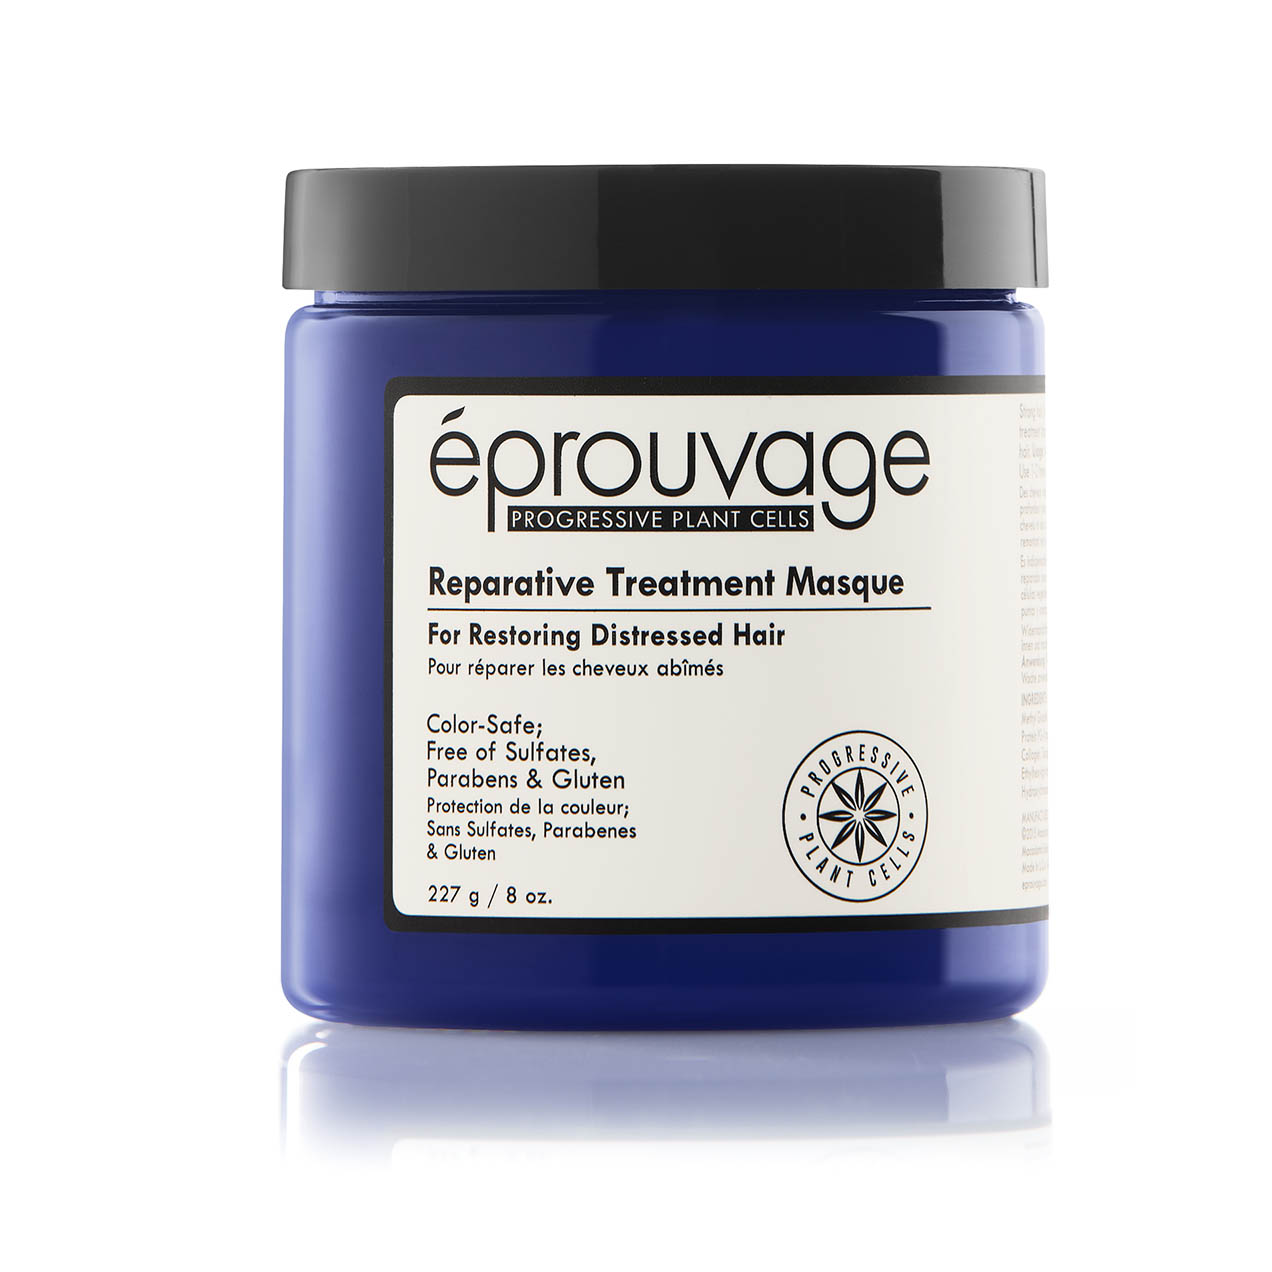 eprouvage reparative treatment masque 227g